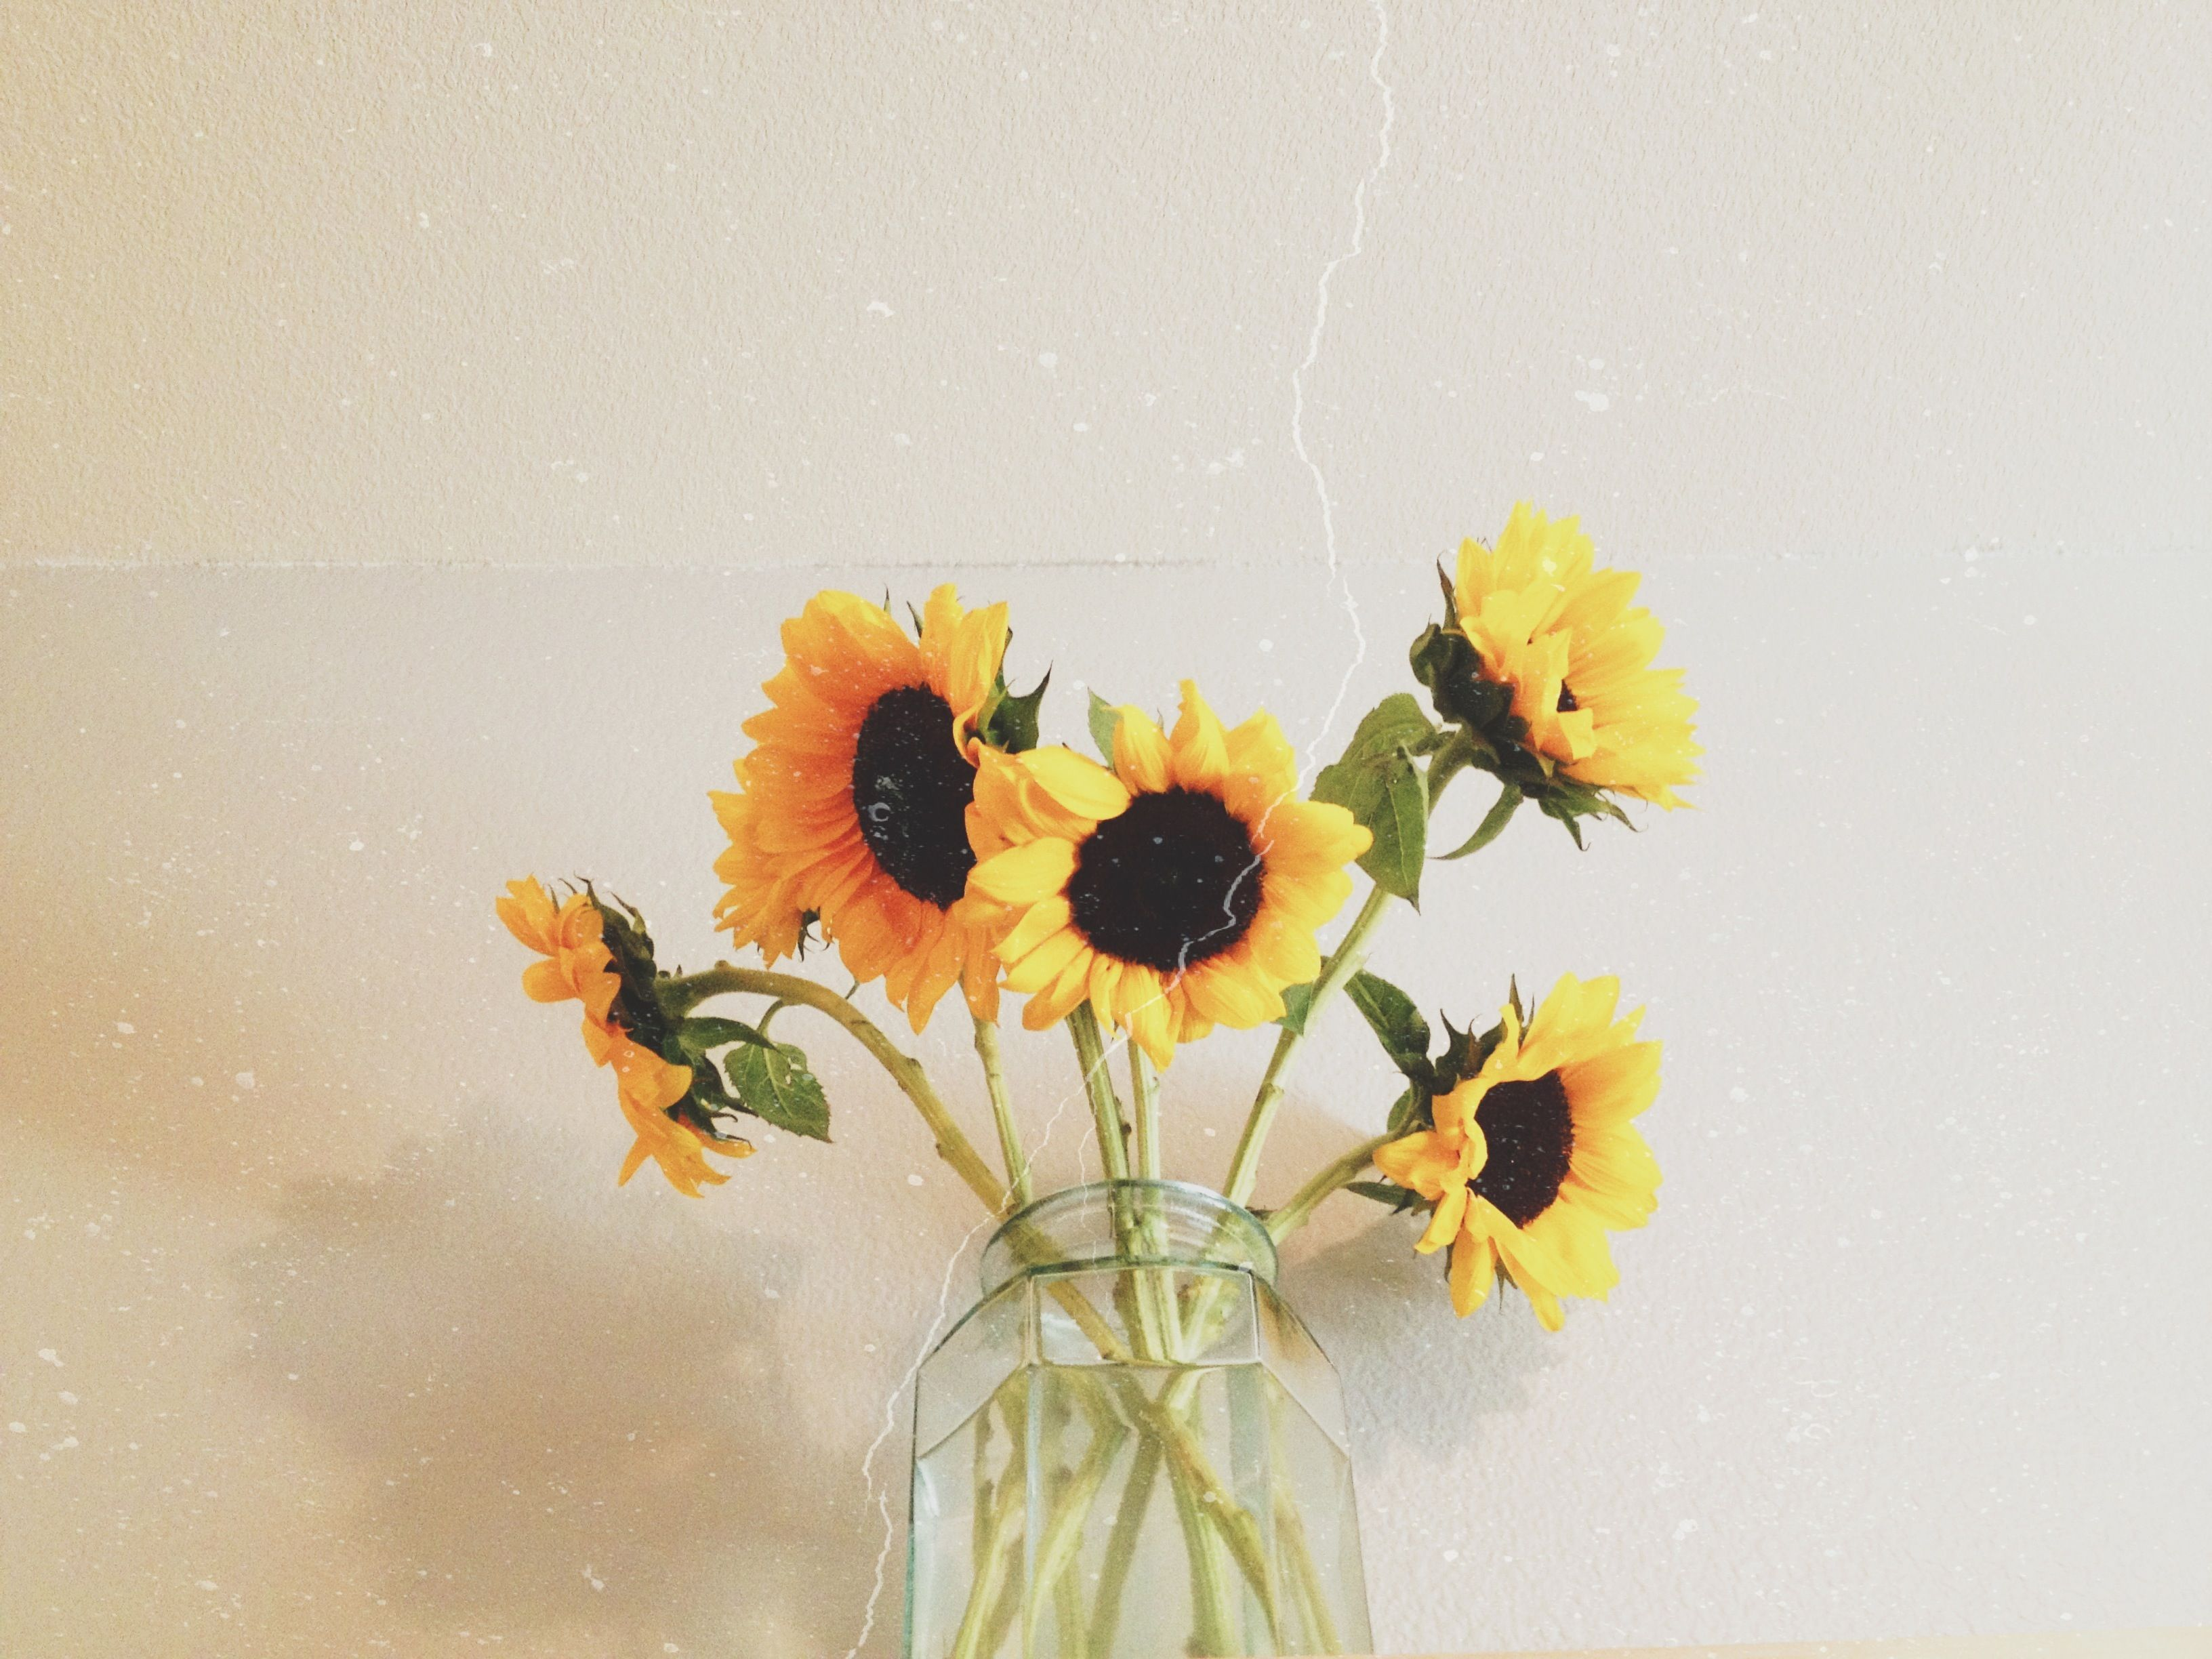 when I die put sunflowers on my grave. I hate roses